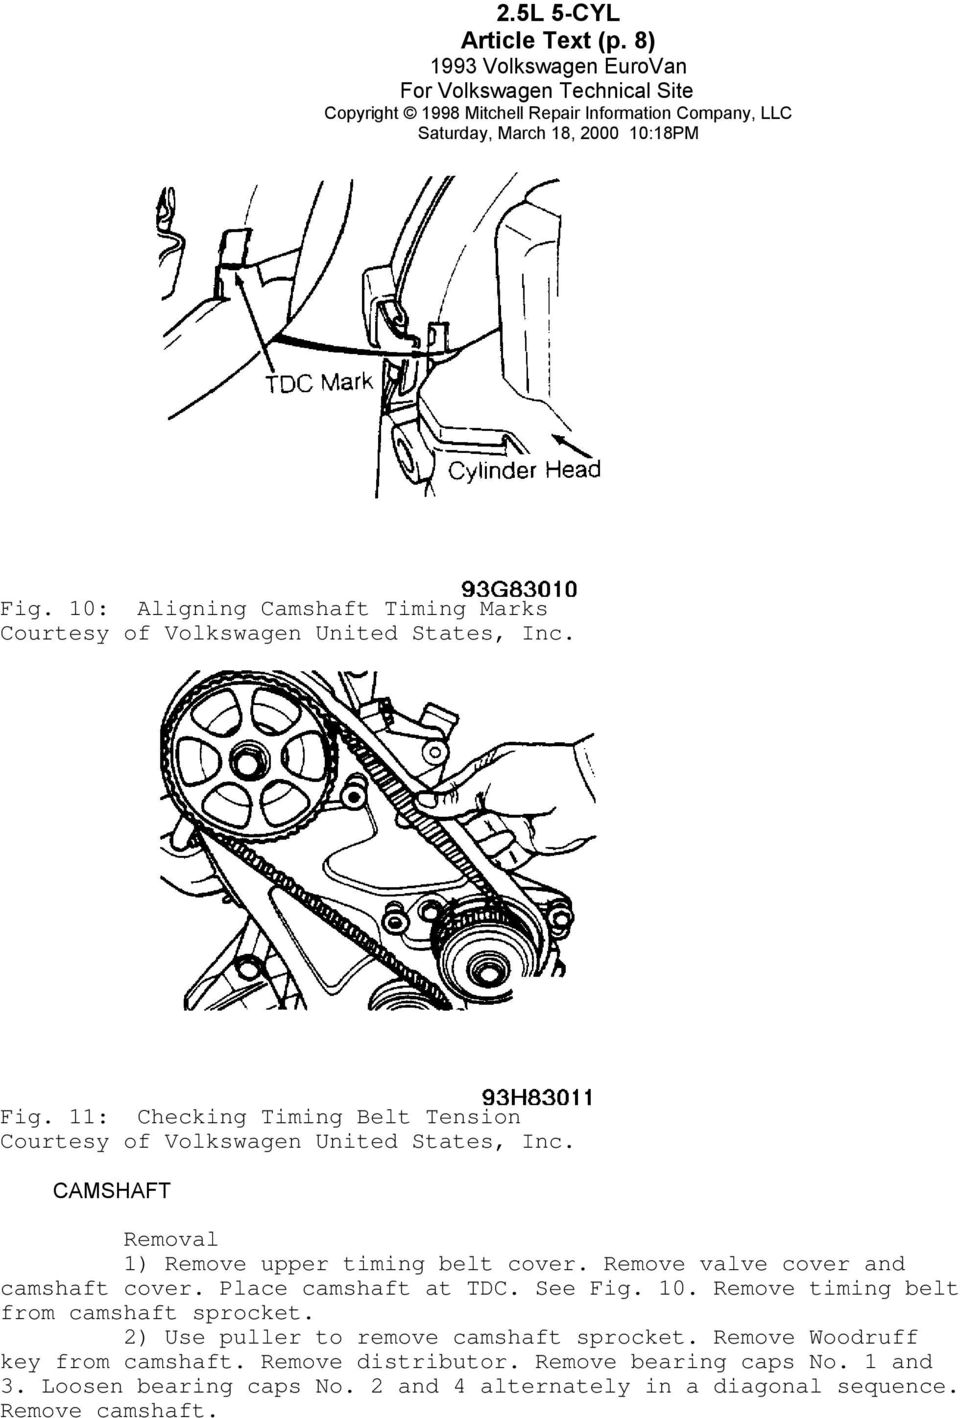 medium resolution of remove valve cover and camshaft cover place camshaft at tdc see fig 10